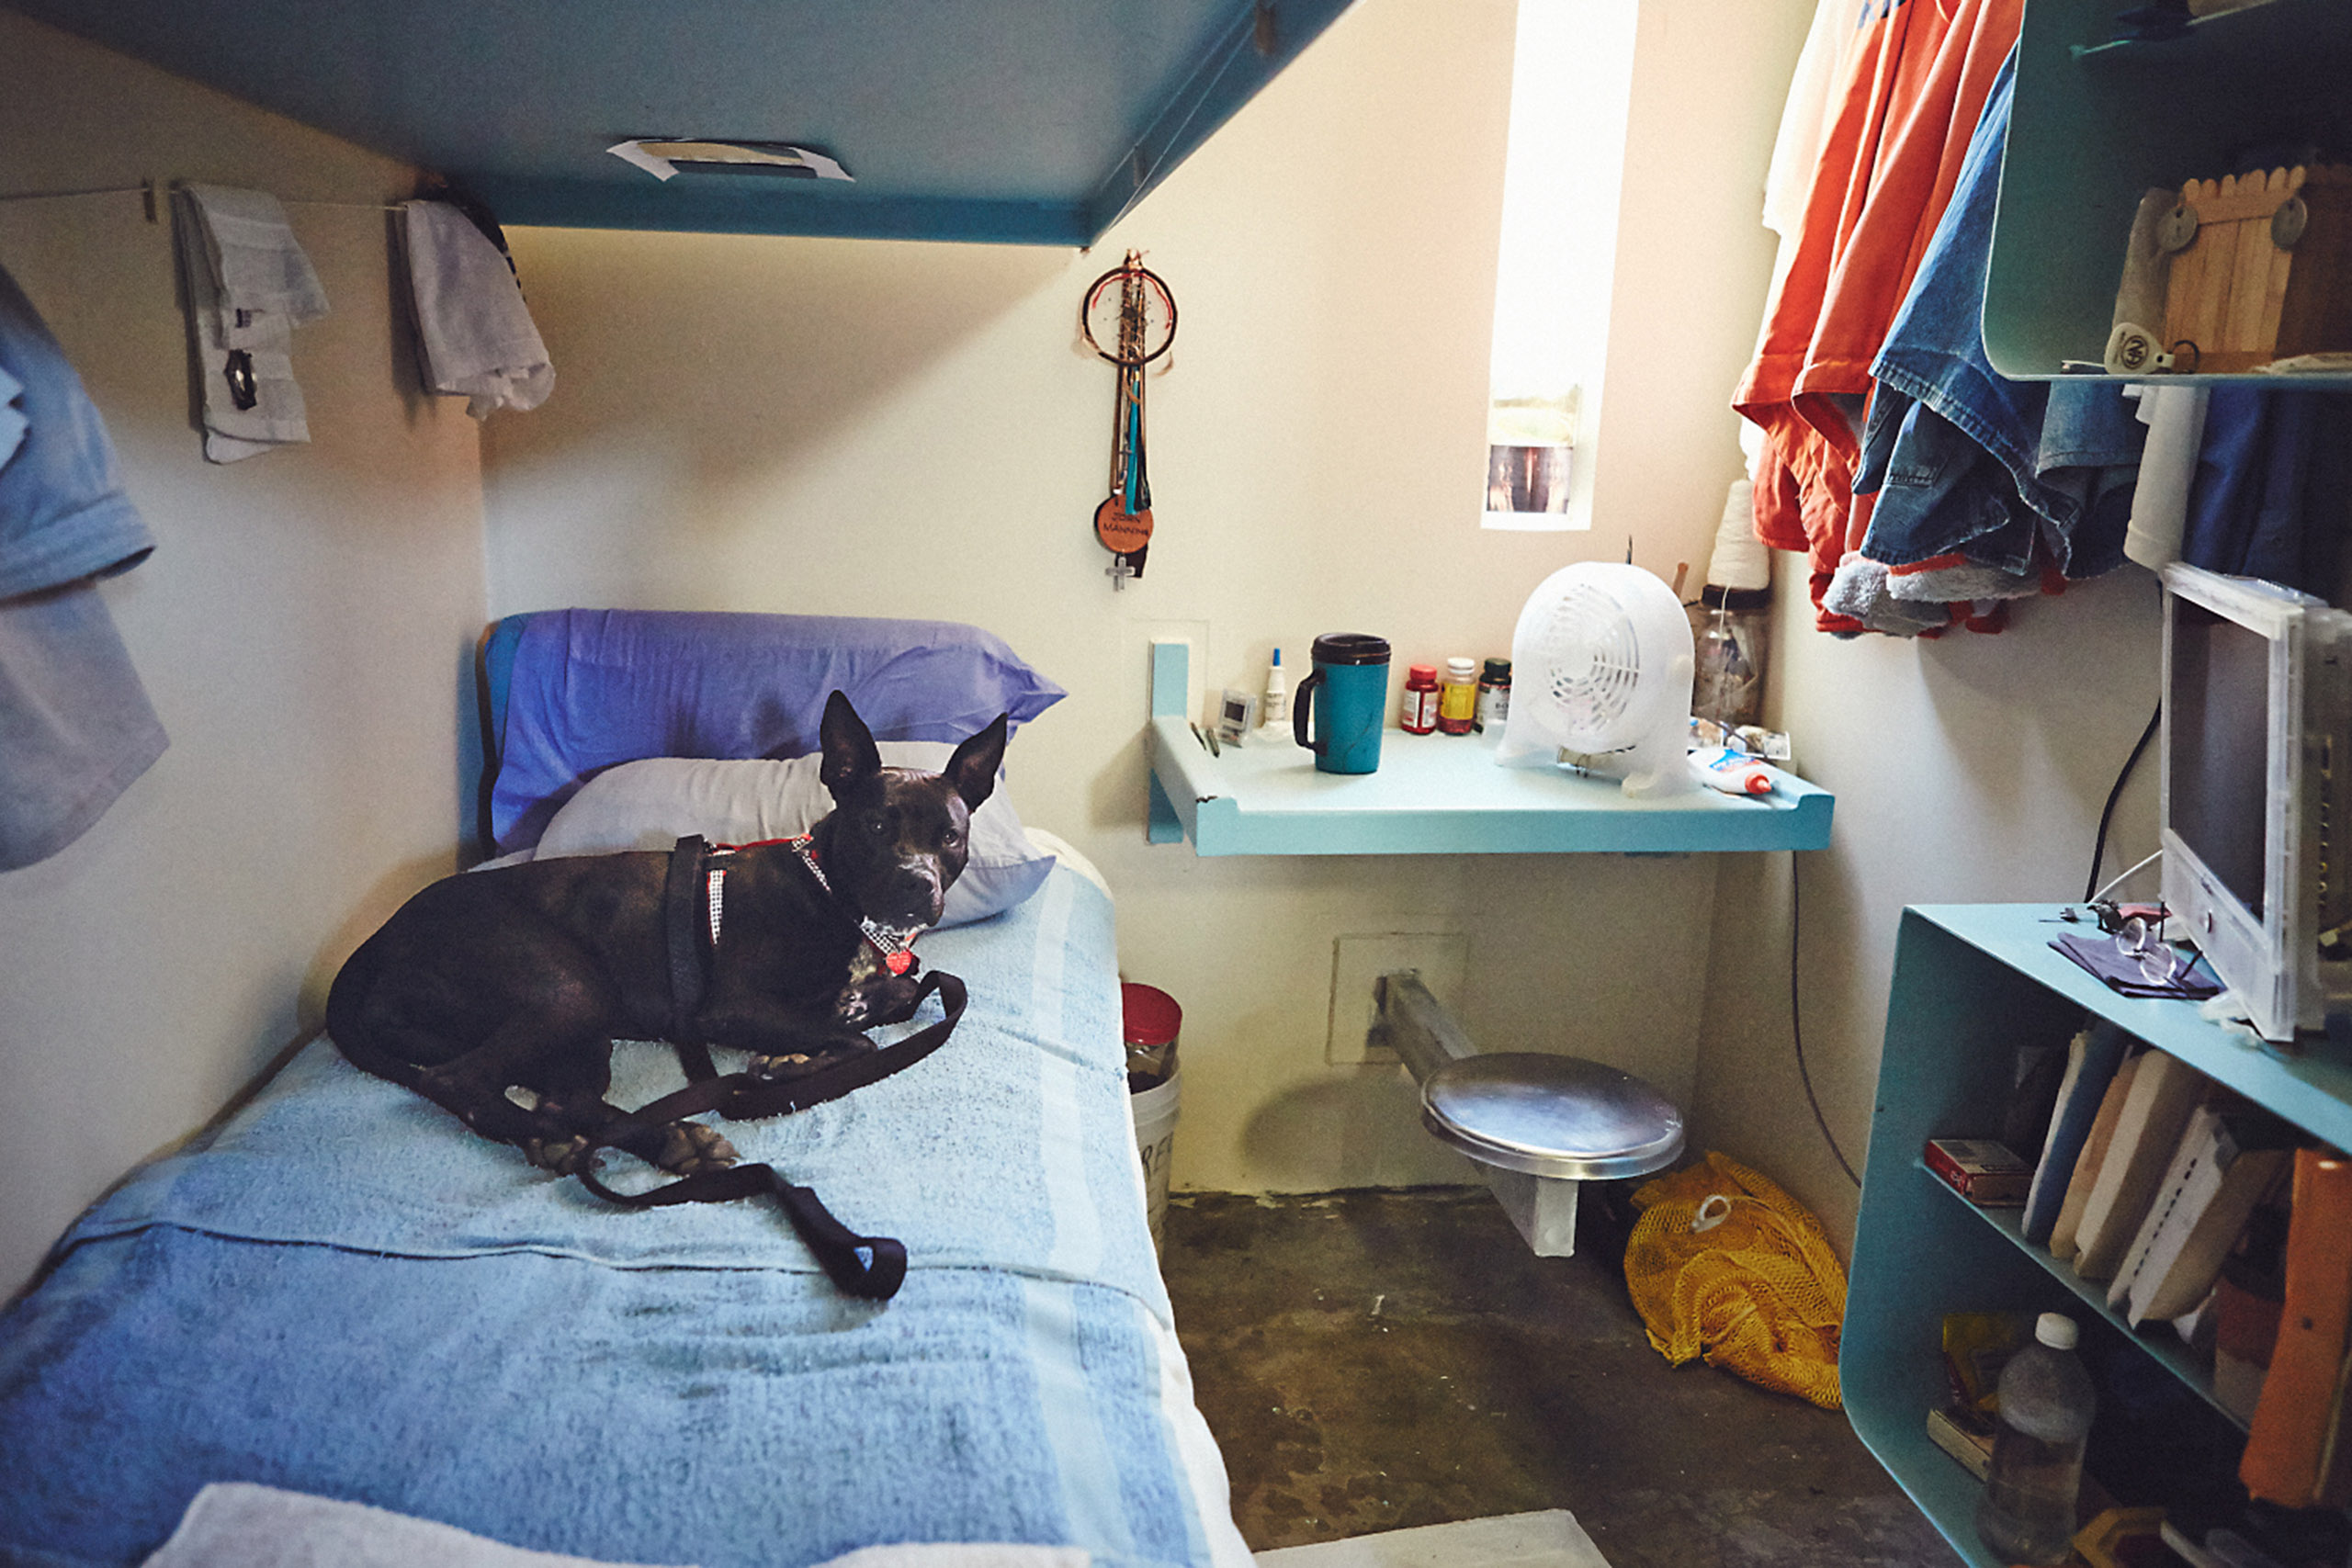 A dog named Shelby sitting inside an inmate's cell at California State Prison.